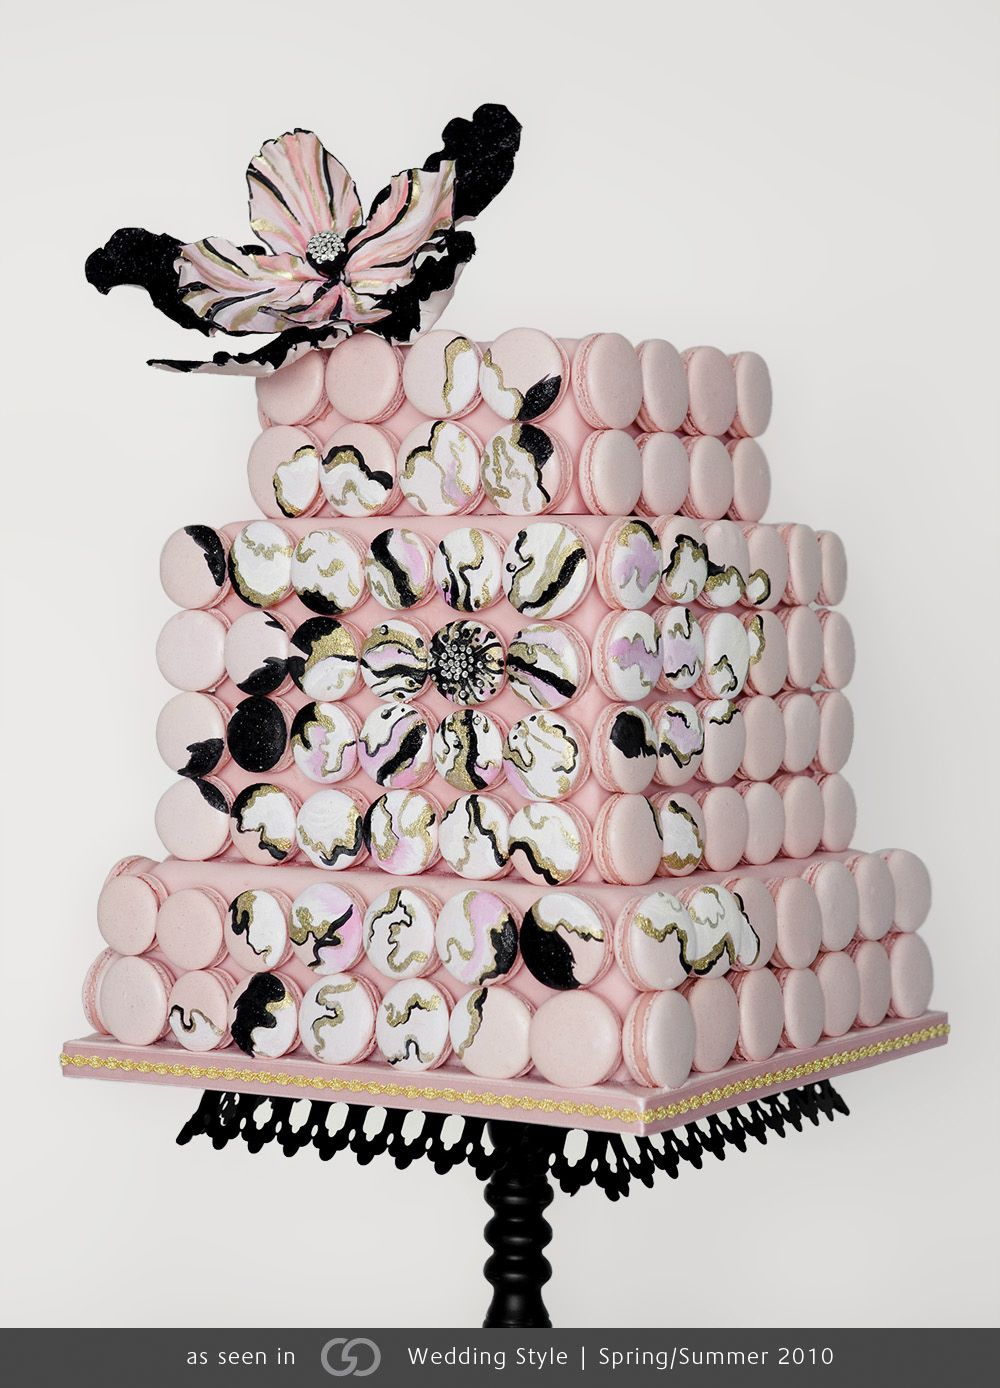 Square cake encrusted with hand-painted macaroons featuring sugar flower topper.